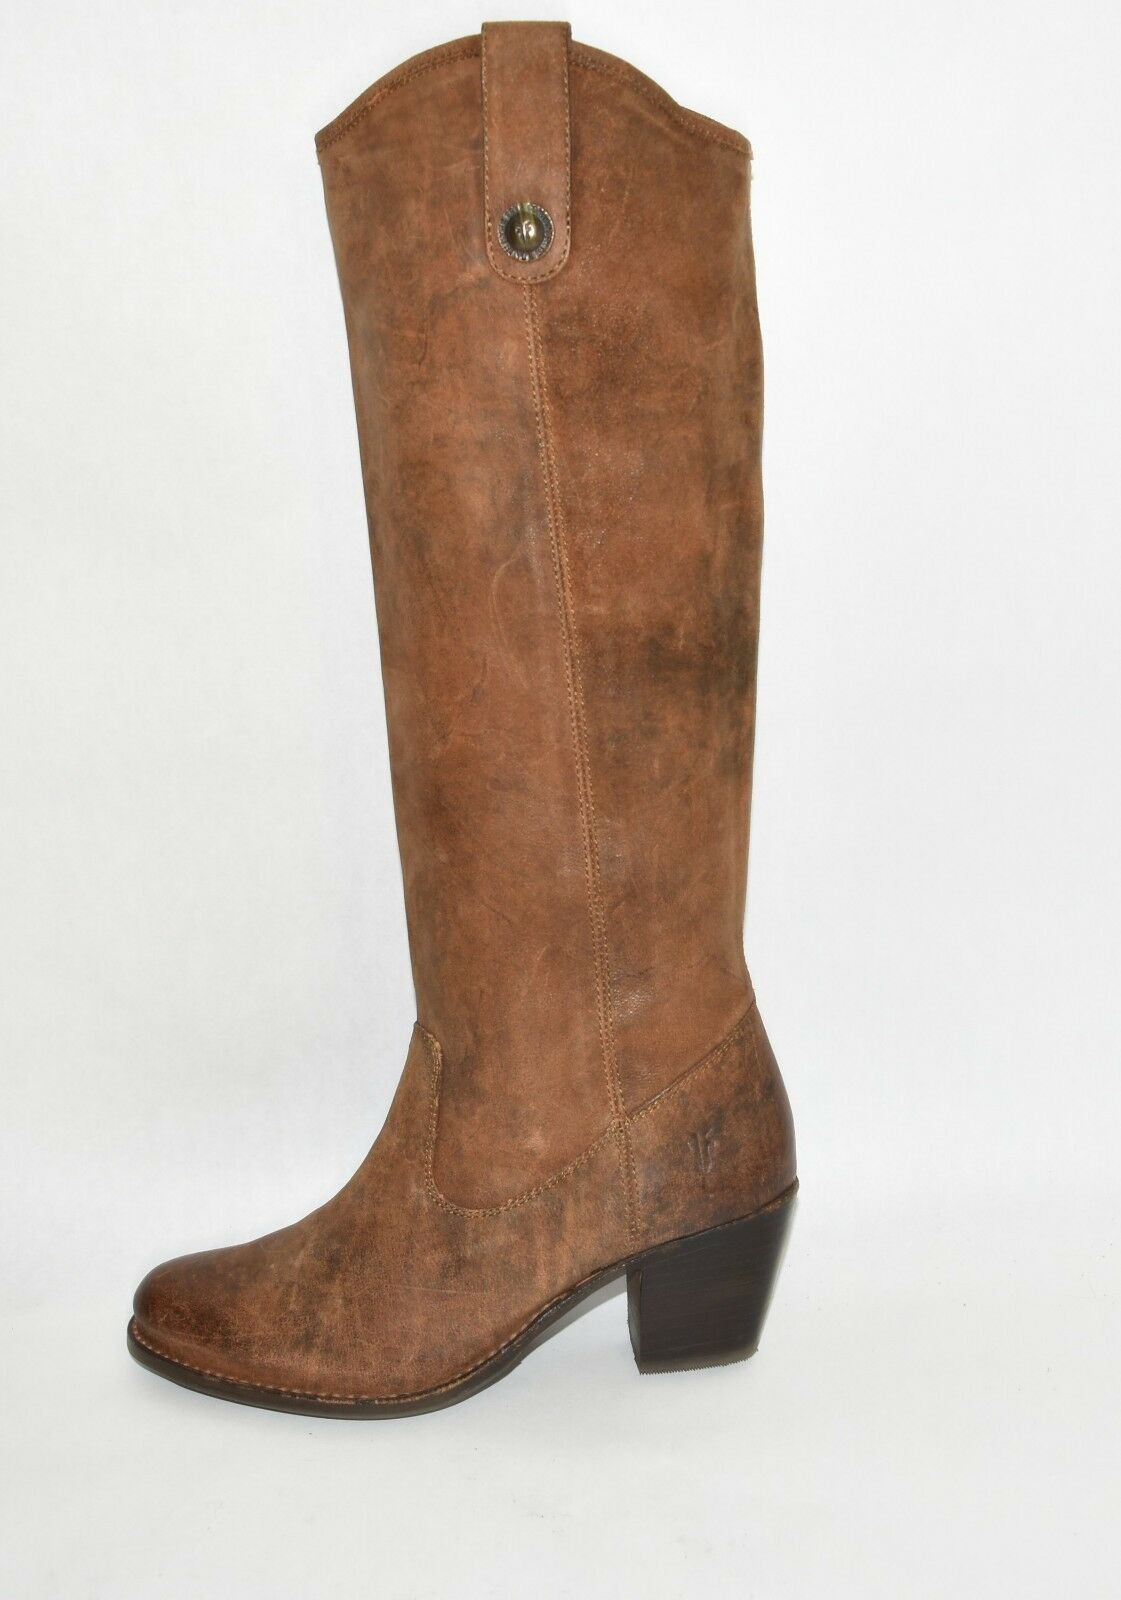 New  Frye Frye Frye 'Jackie Button' Boot Brown Leather Size 6 76575 T22 d980b8